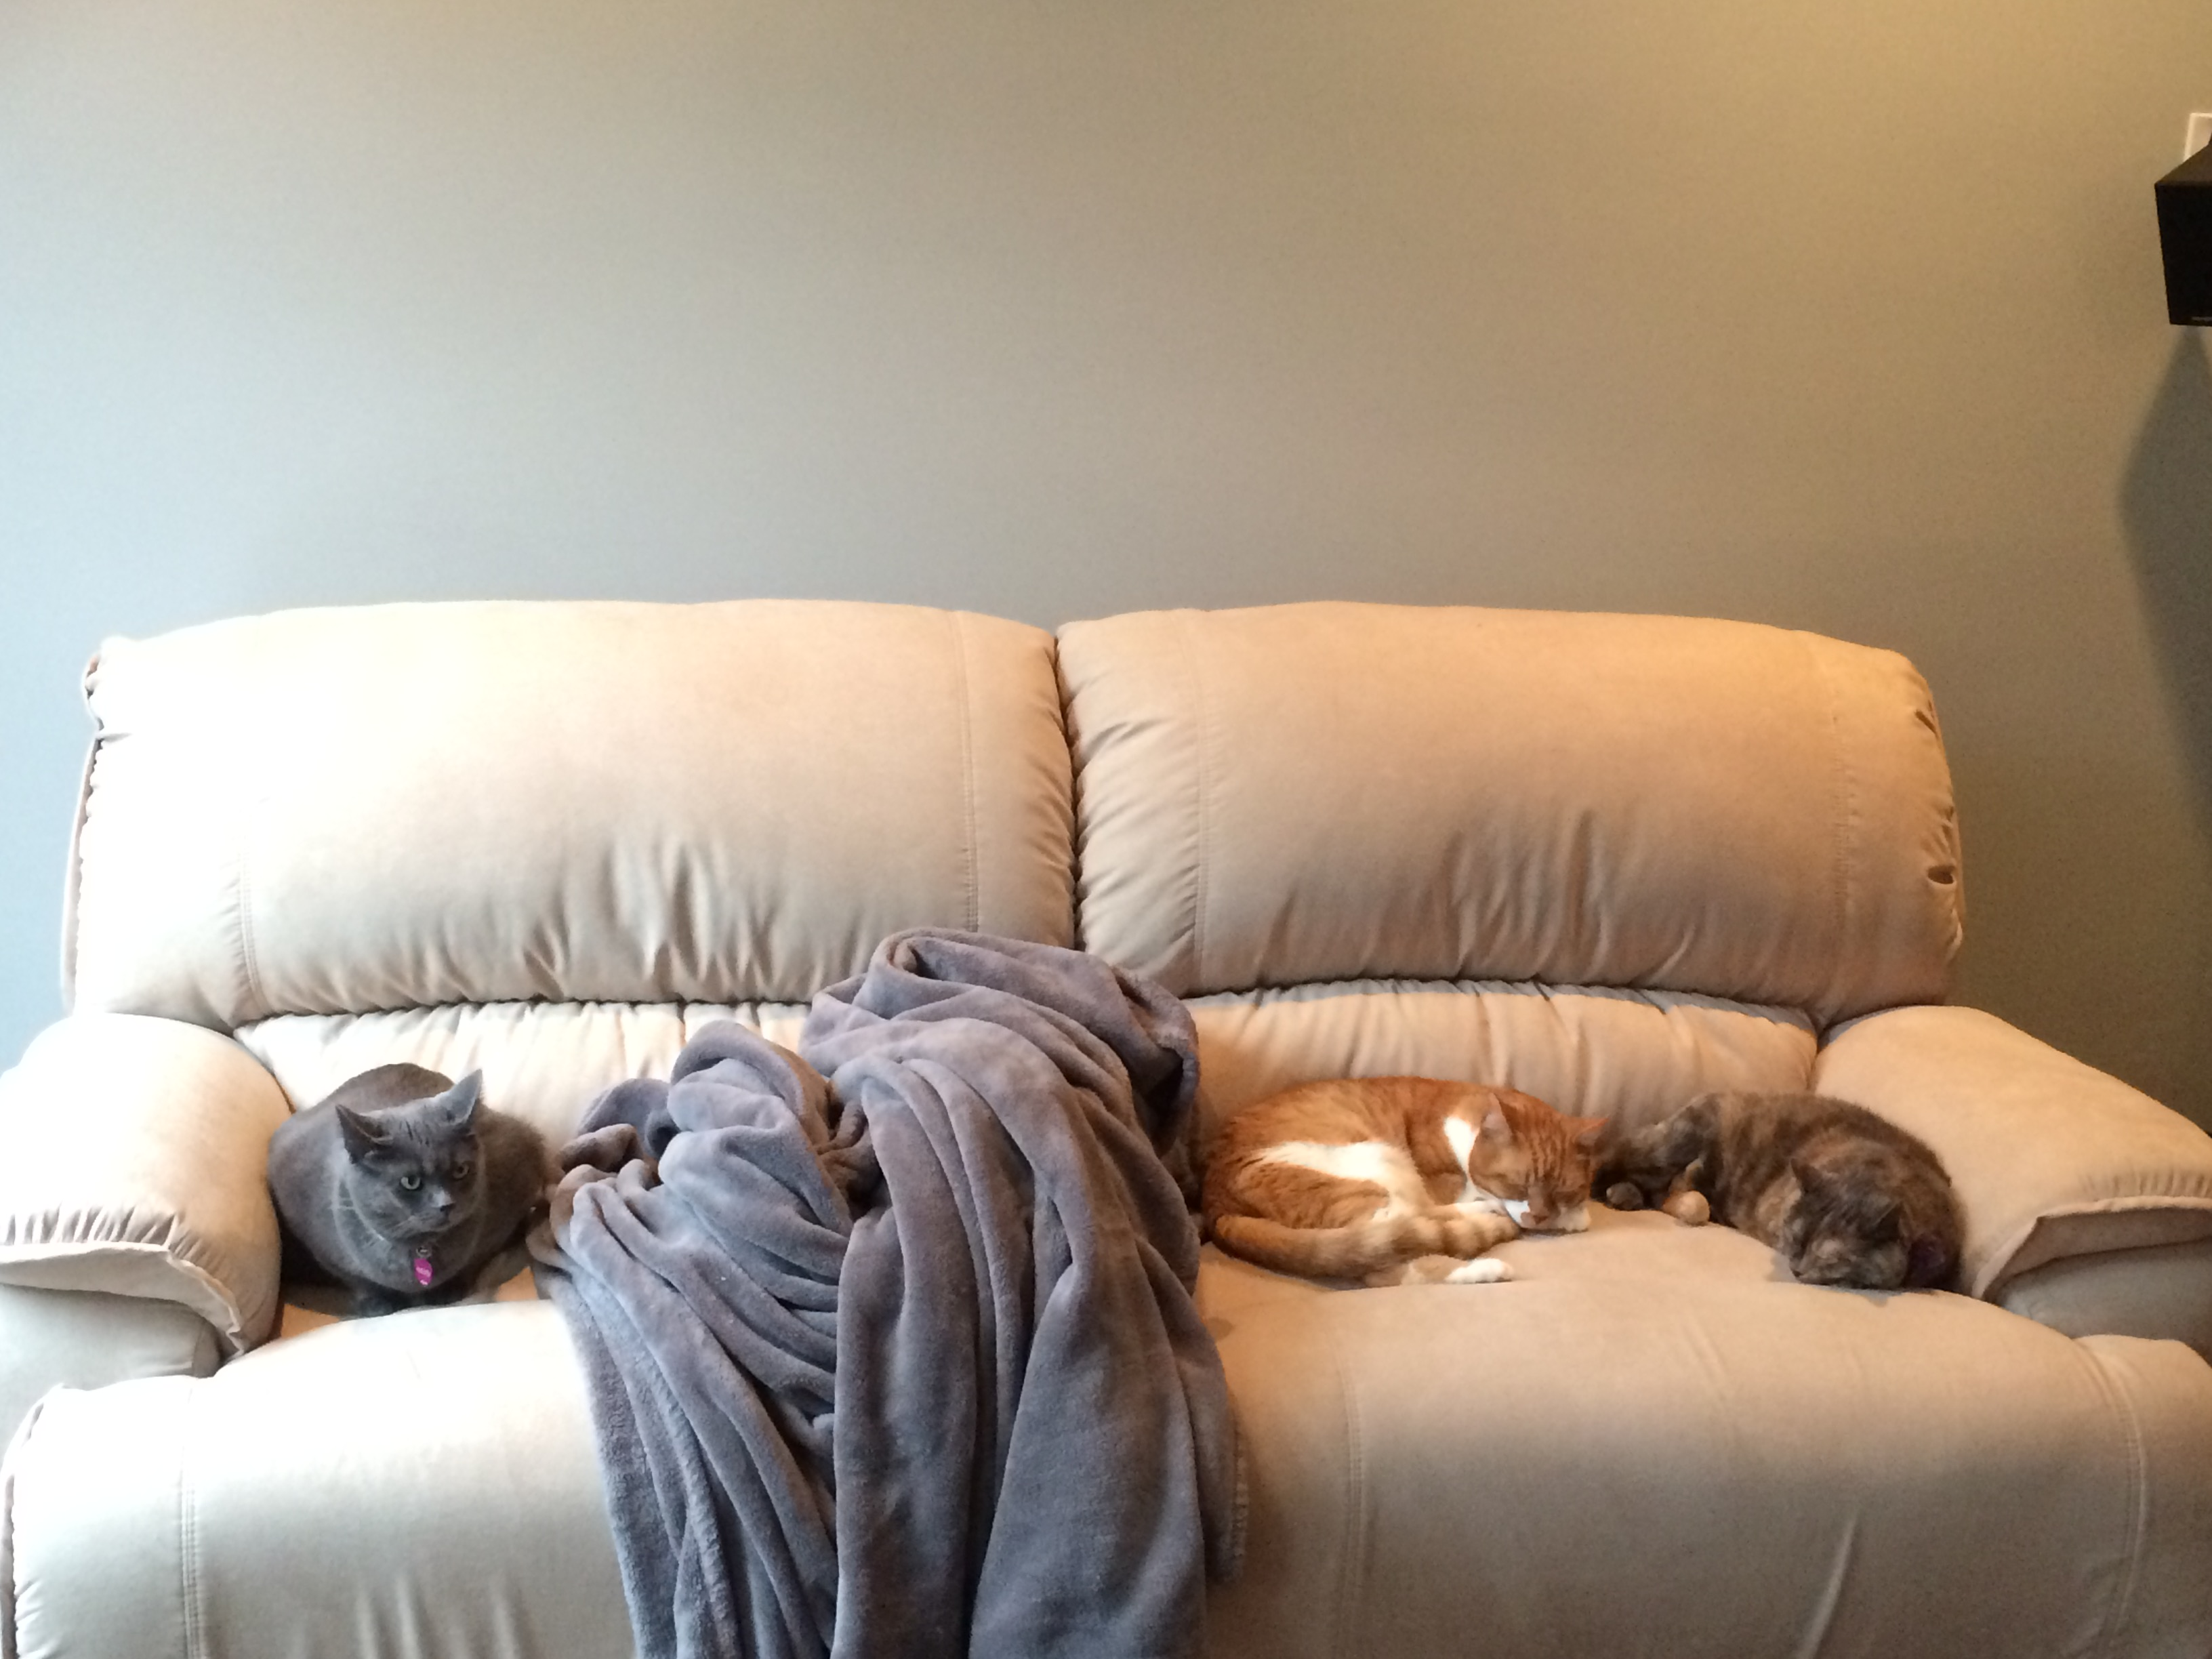 The cats enjoying the new couch